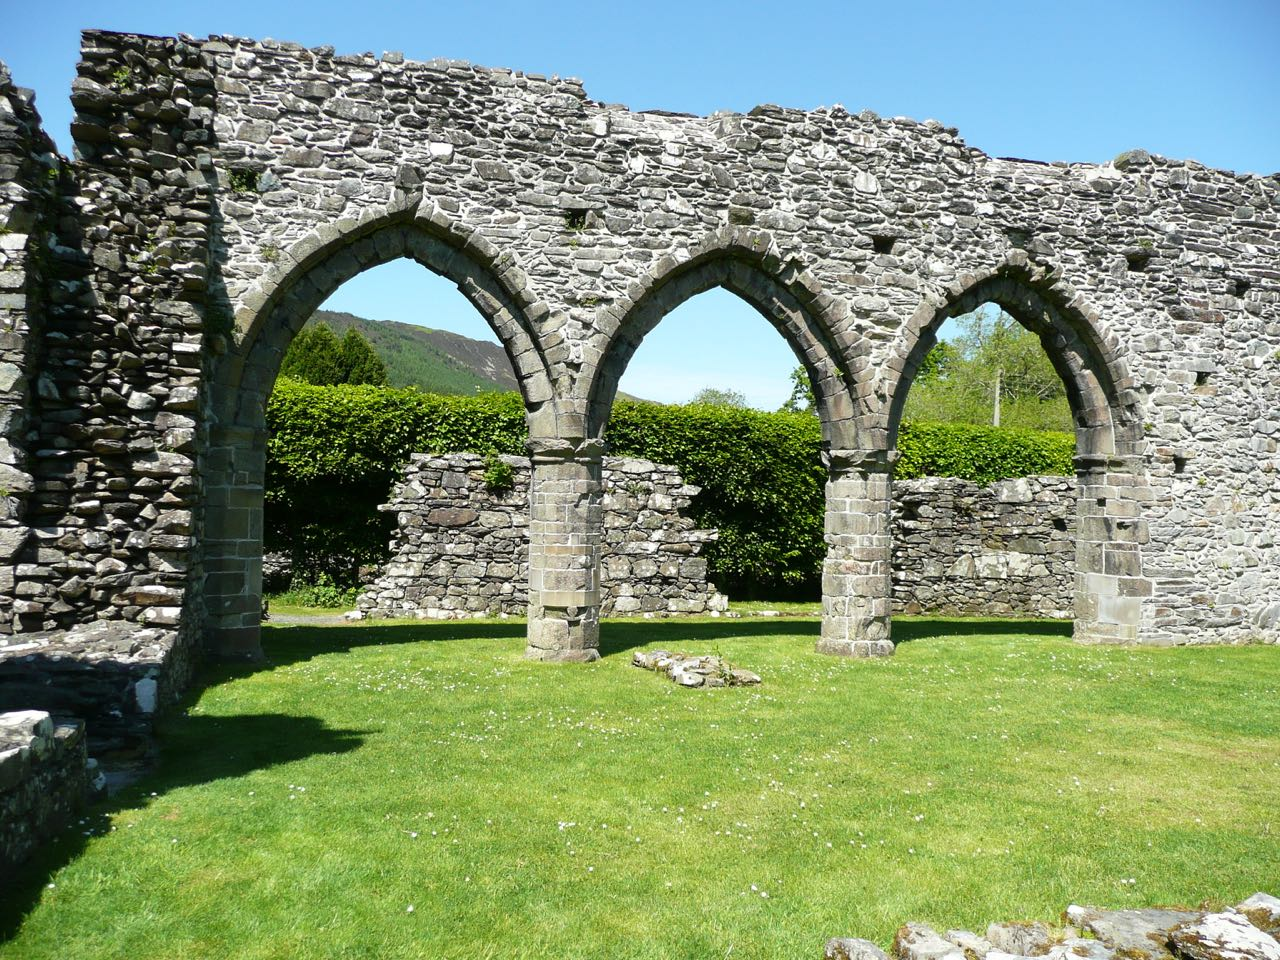 Cymer Abbey, Llanelltyd. Founded in 1198 by Maredudd ap Cynan for the Cistercian order